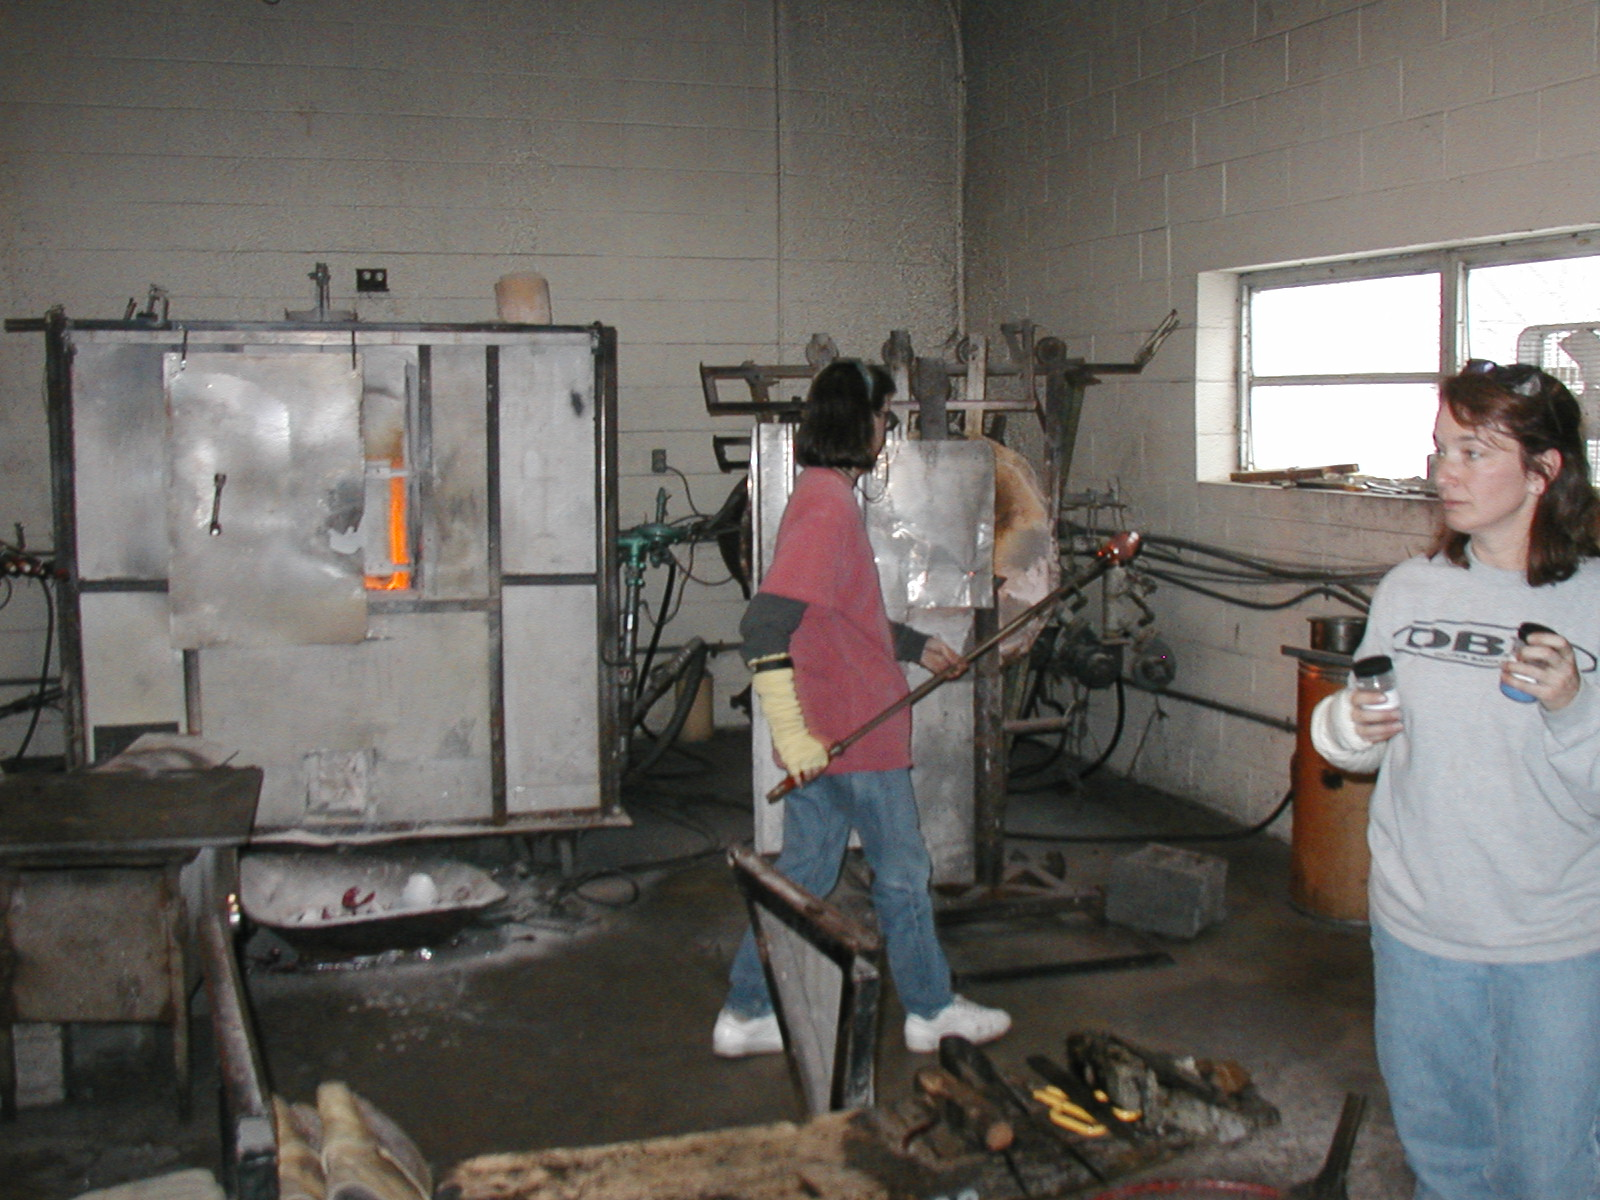 Glassblower.Info - Joel Bless Glasslight Glassblowing class January 18 2004 #055